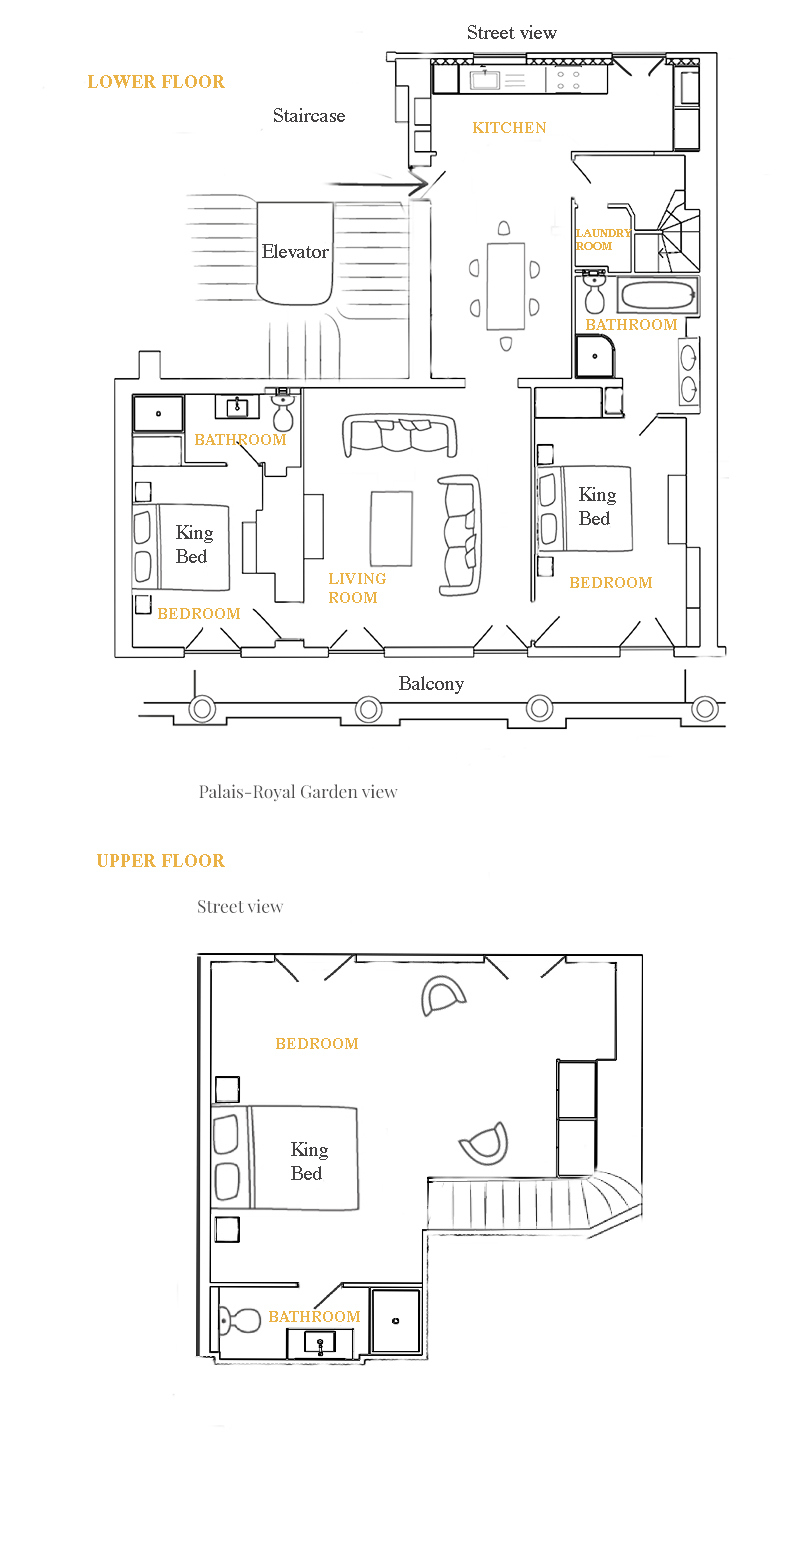 Floorplan of the Chevalier vacation rental offered by Paris Perfect